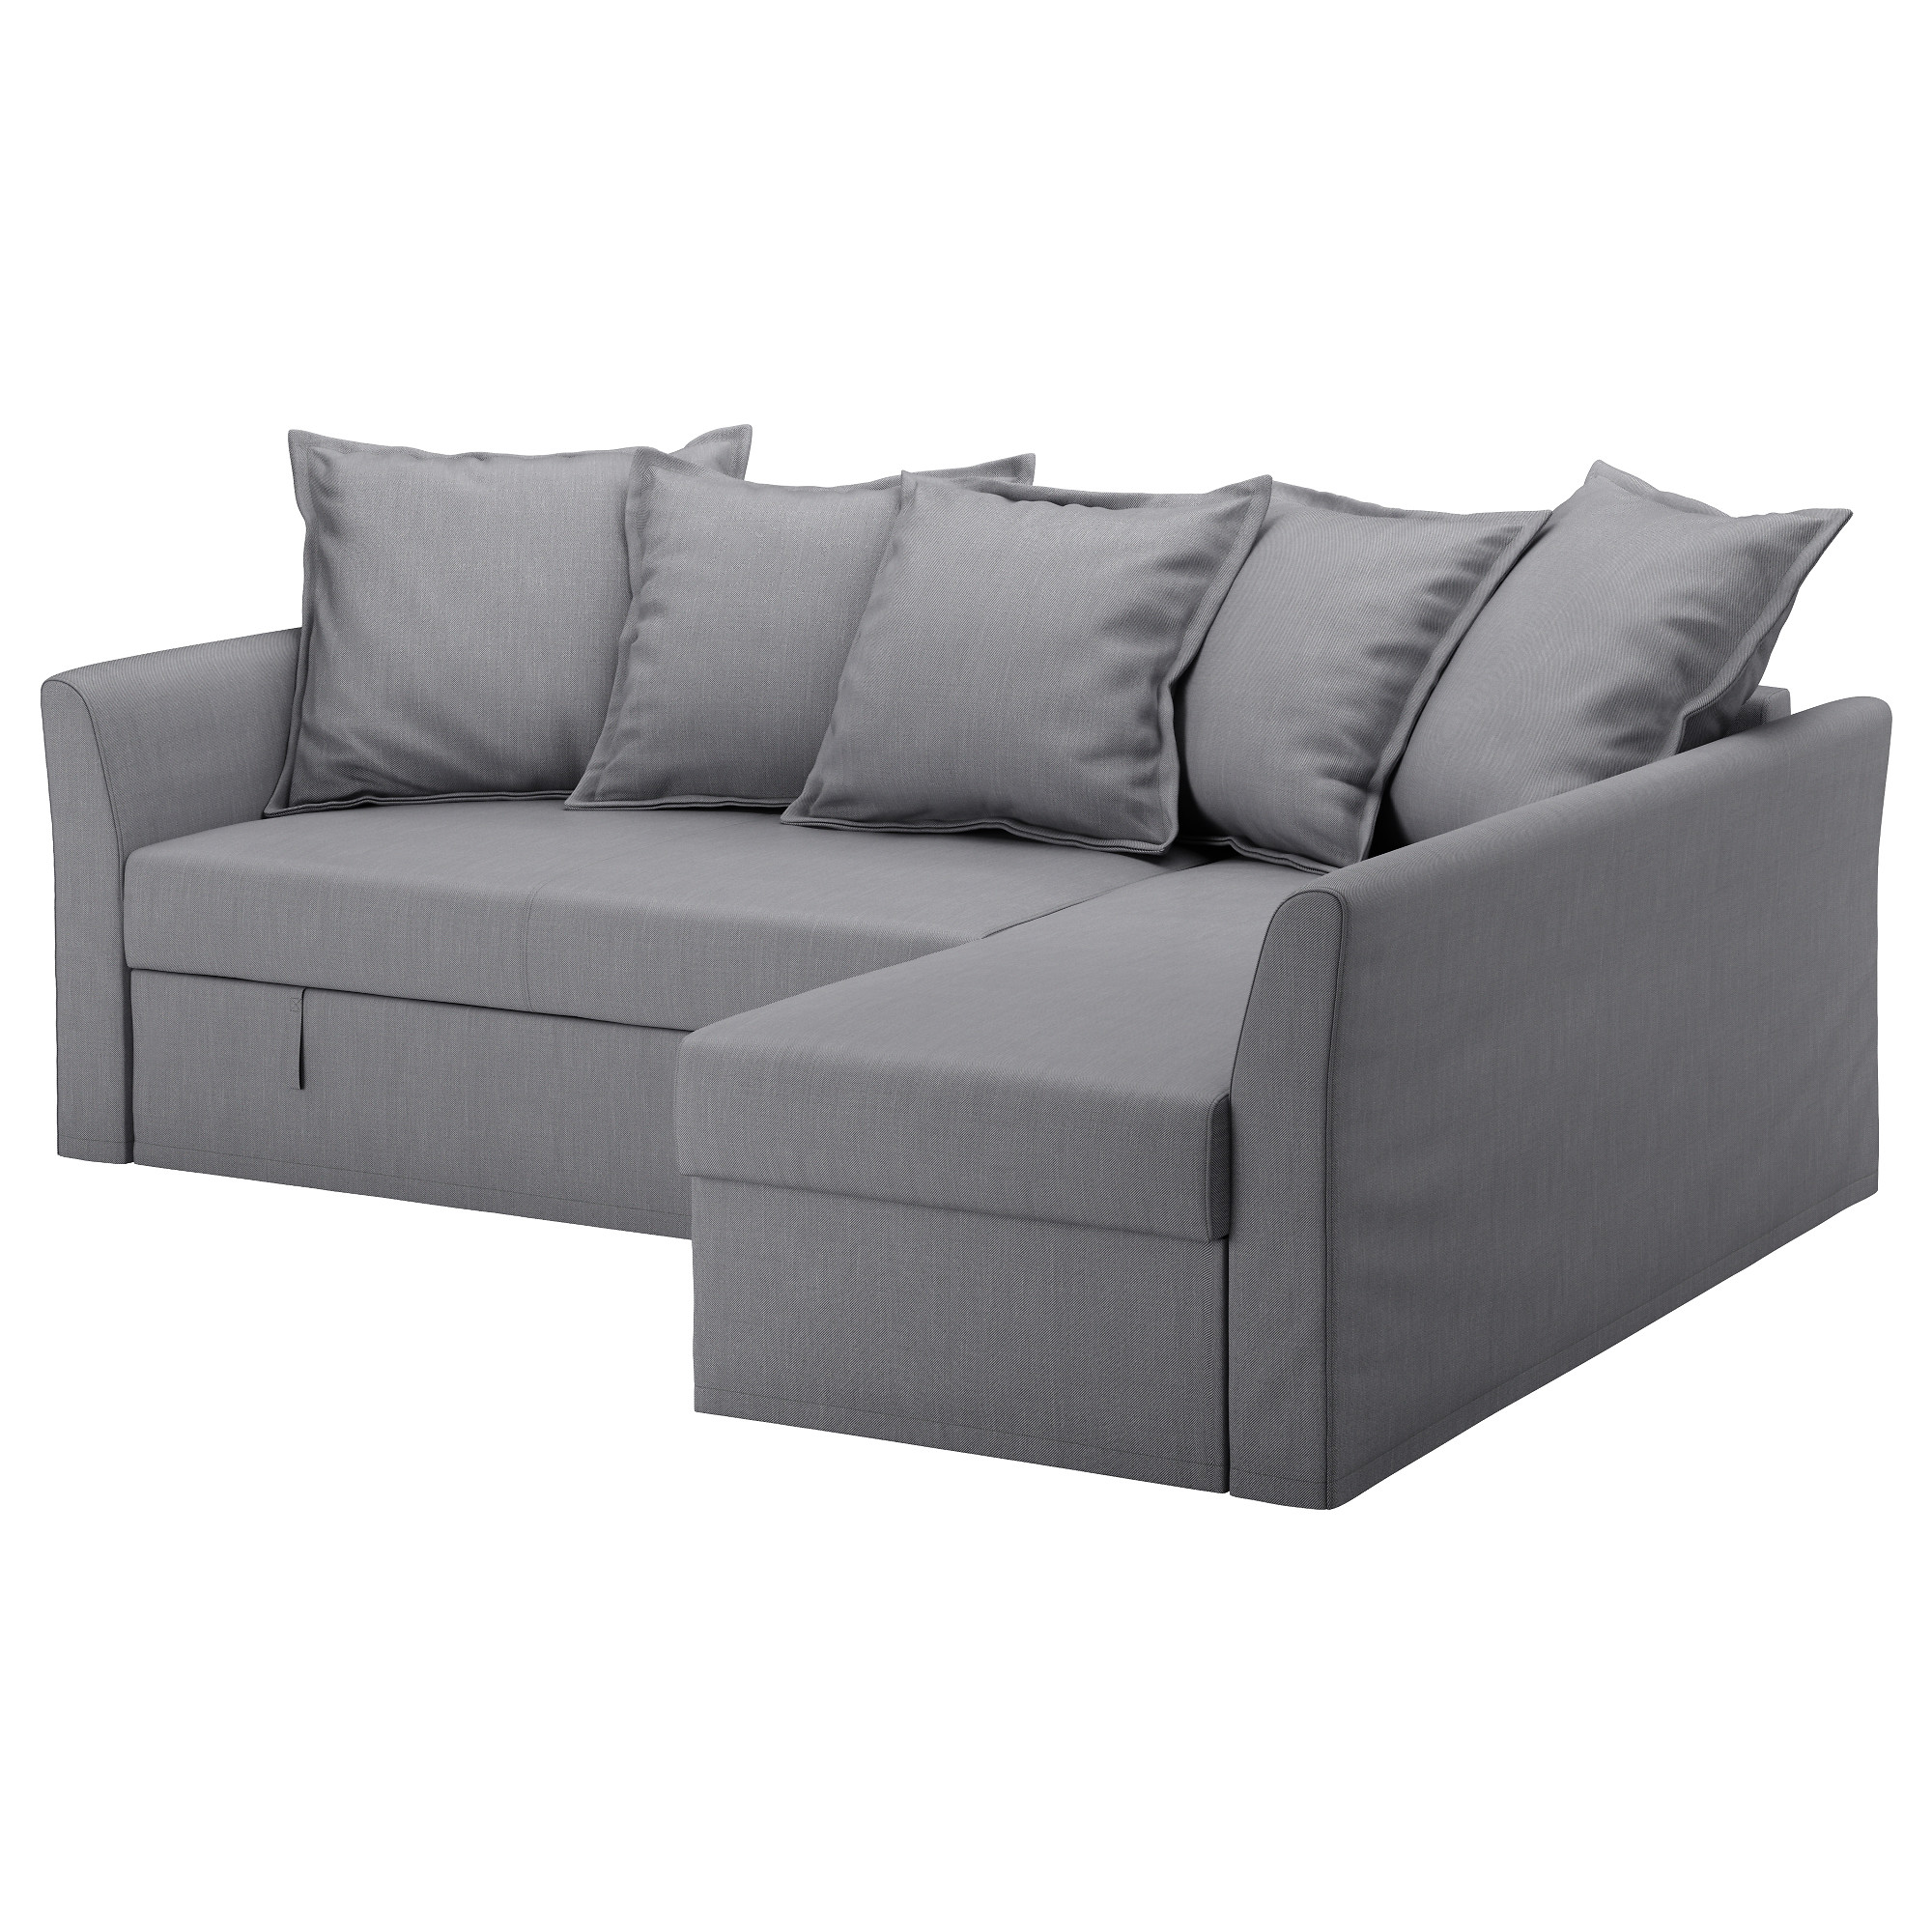 holmsund corner sofa bed nordvalla medium grey chaise. Black Bedroom Furniture Sets. Home Design Ideas